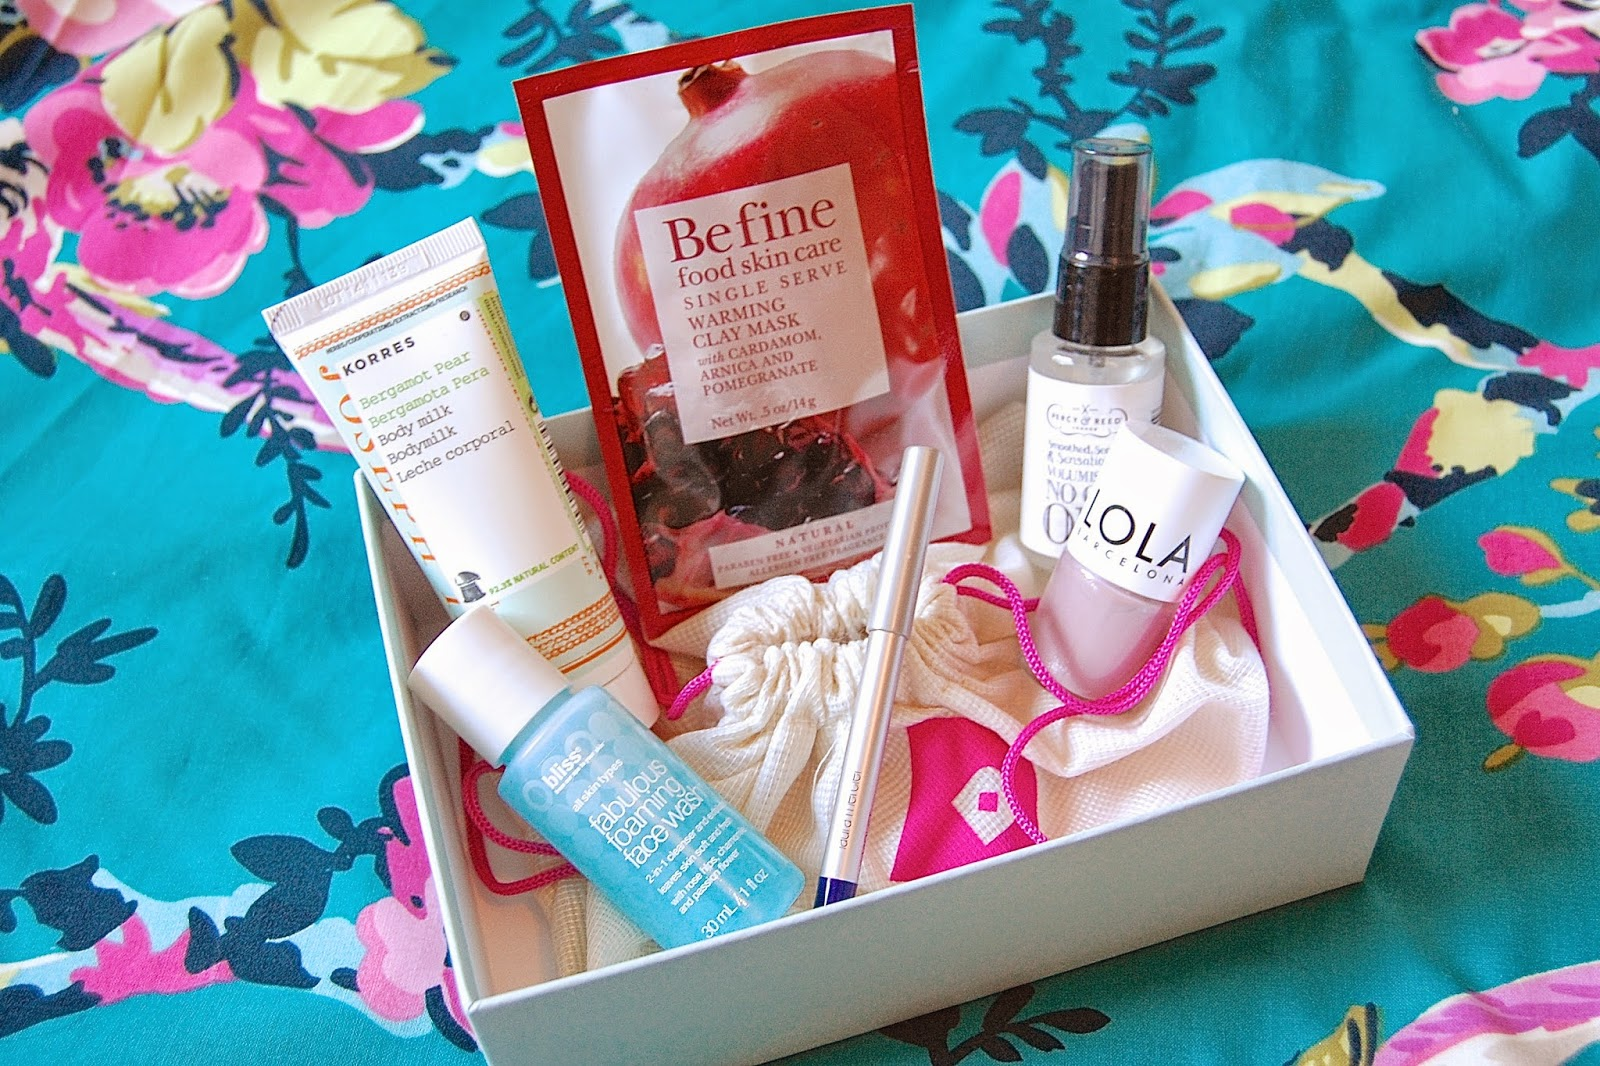 Birchbox 'Royally Good' box